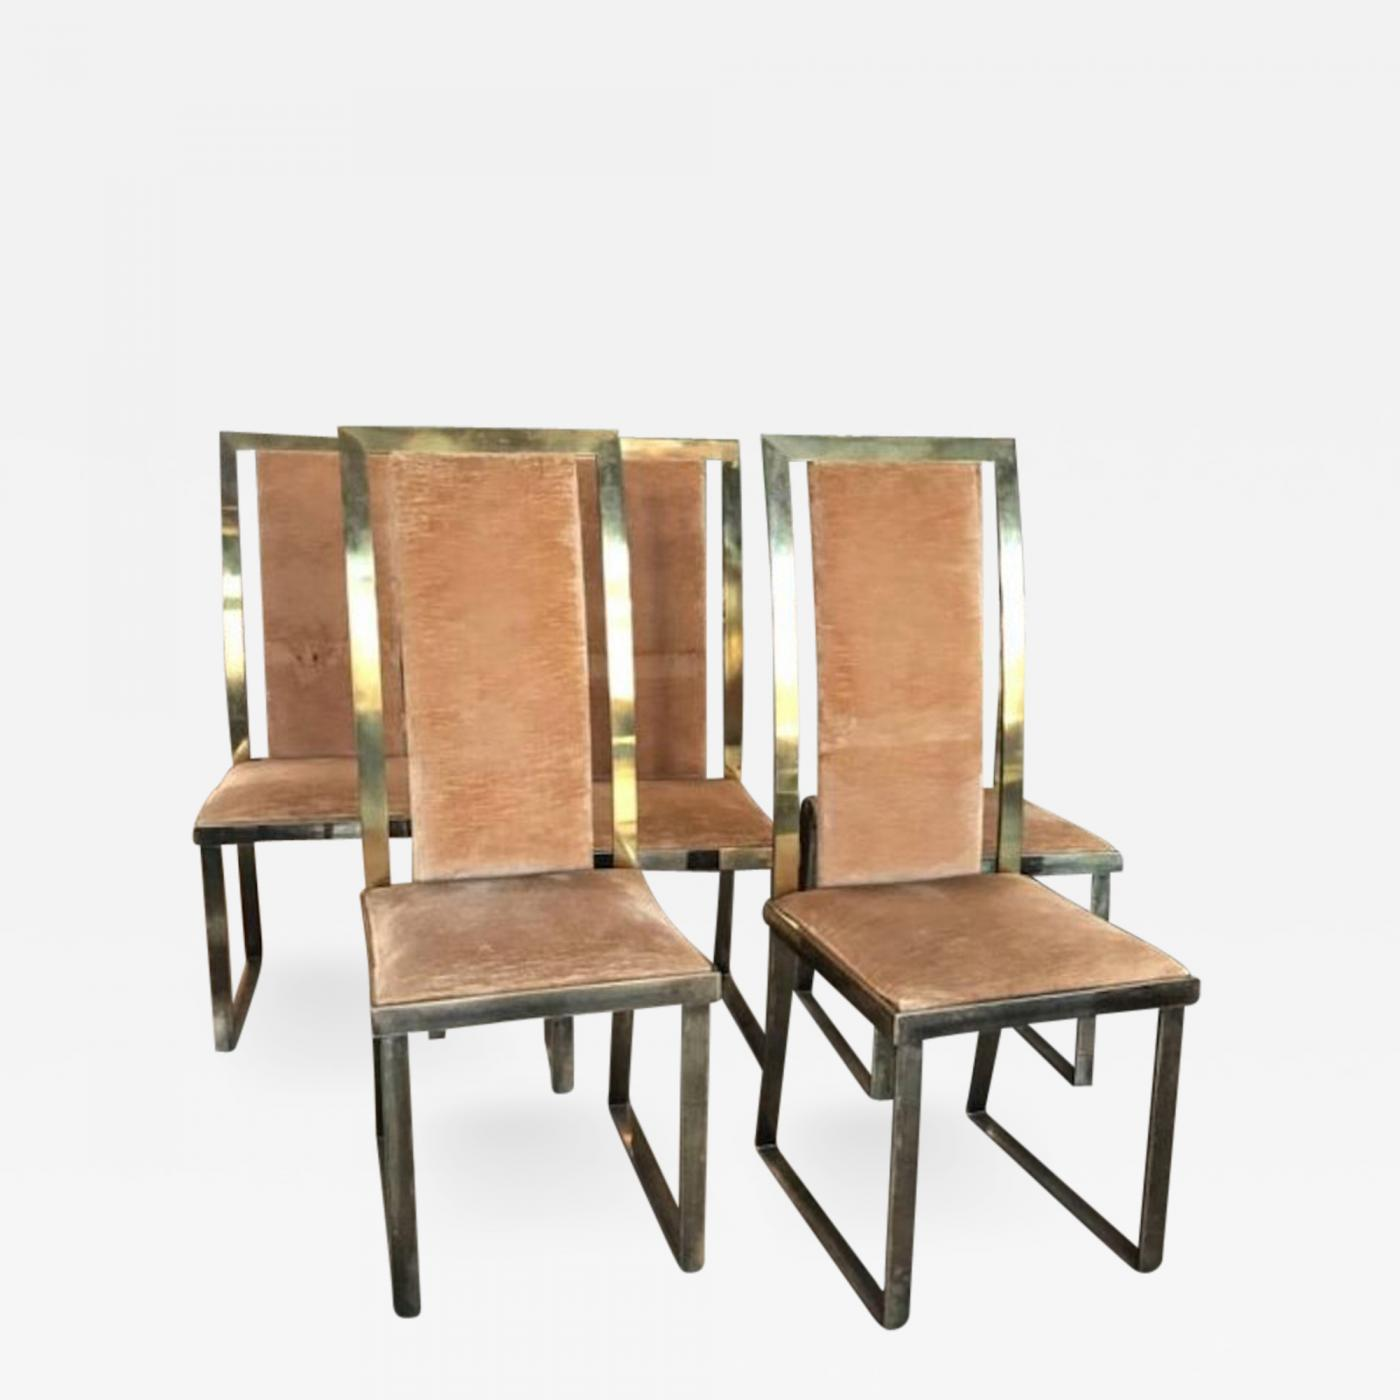 Listings / Furniture / Seating / Dining Chairs